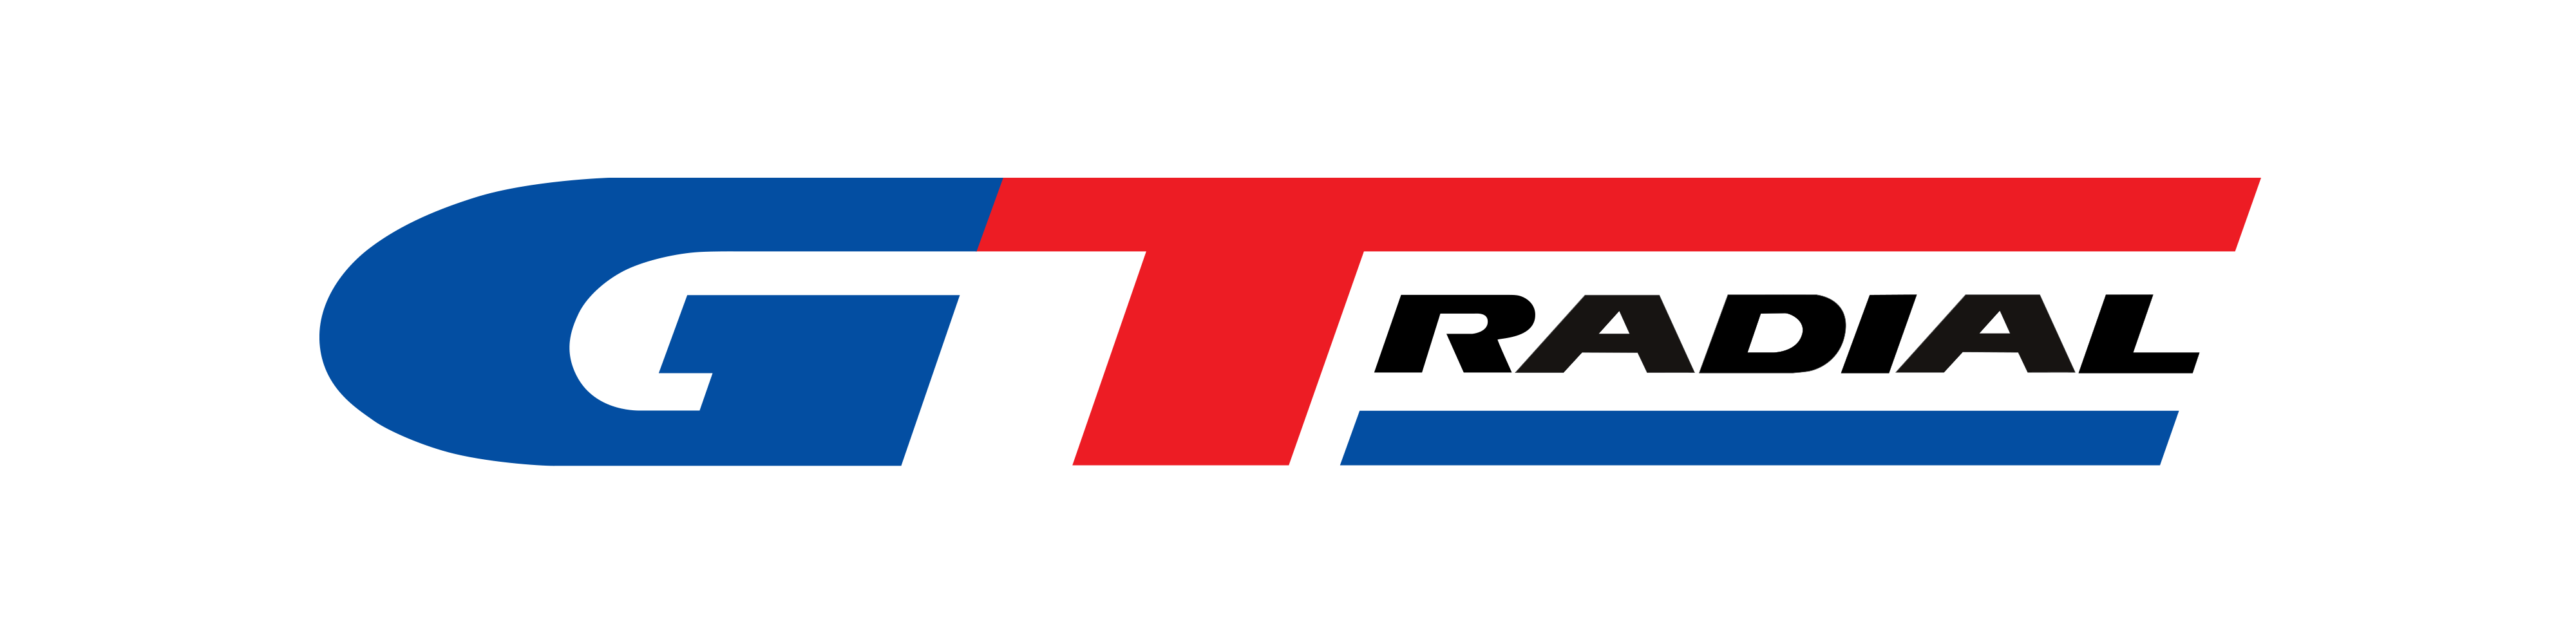 GT Radial Tires Logo, HD Png, Information